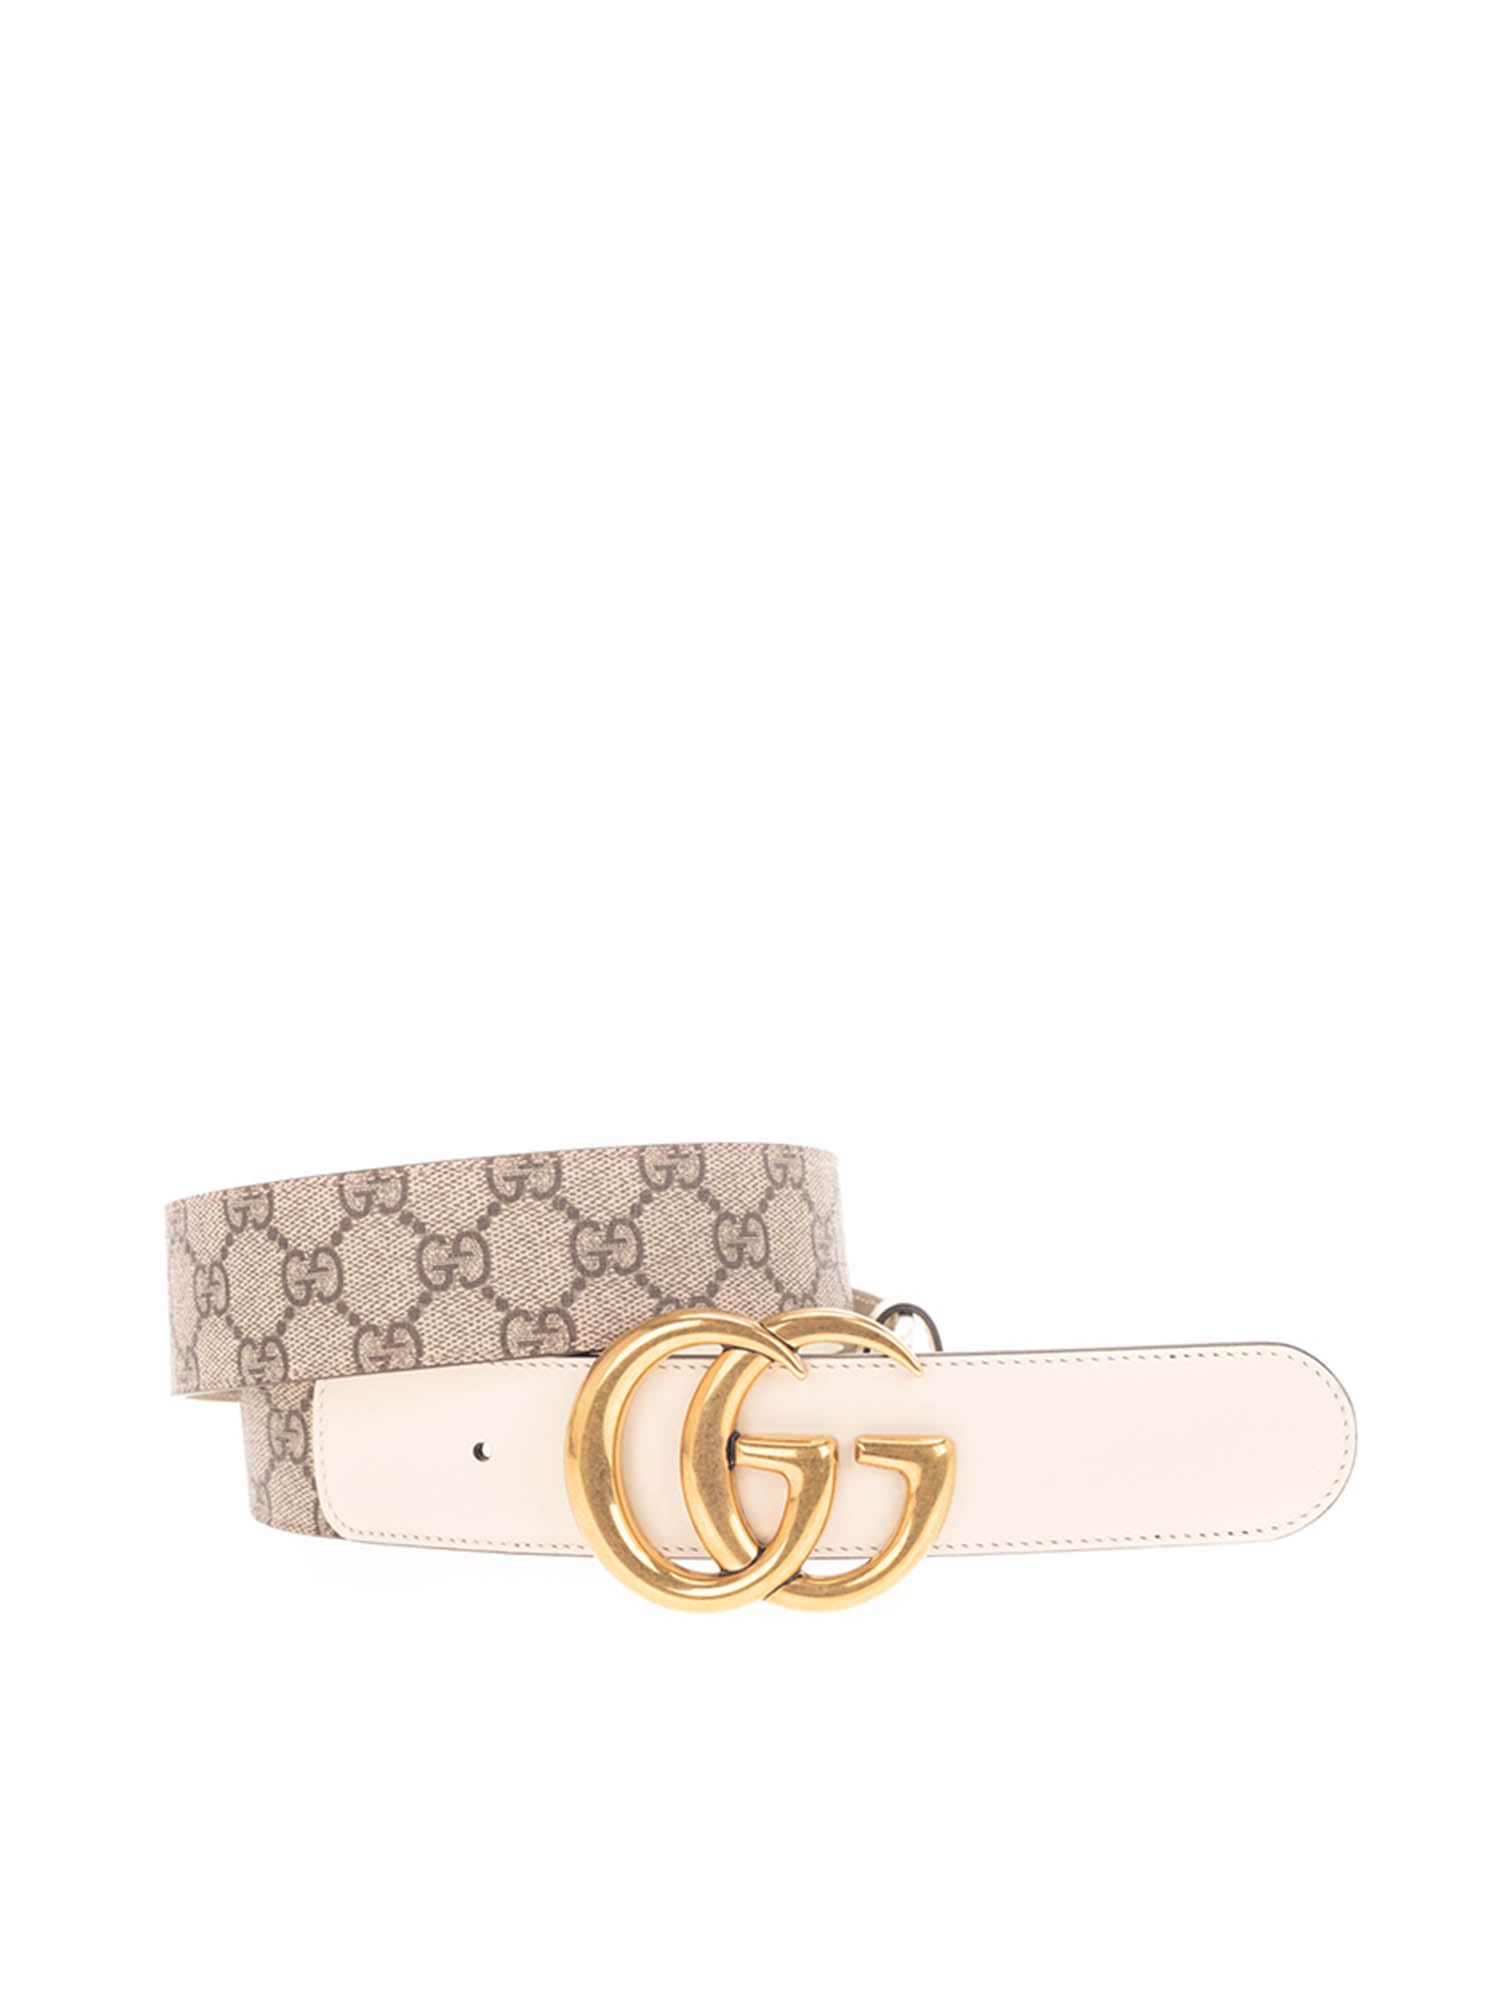 Gucci GG SUPREME BELT IN BEIGE AND WHITE